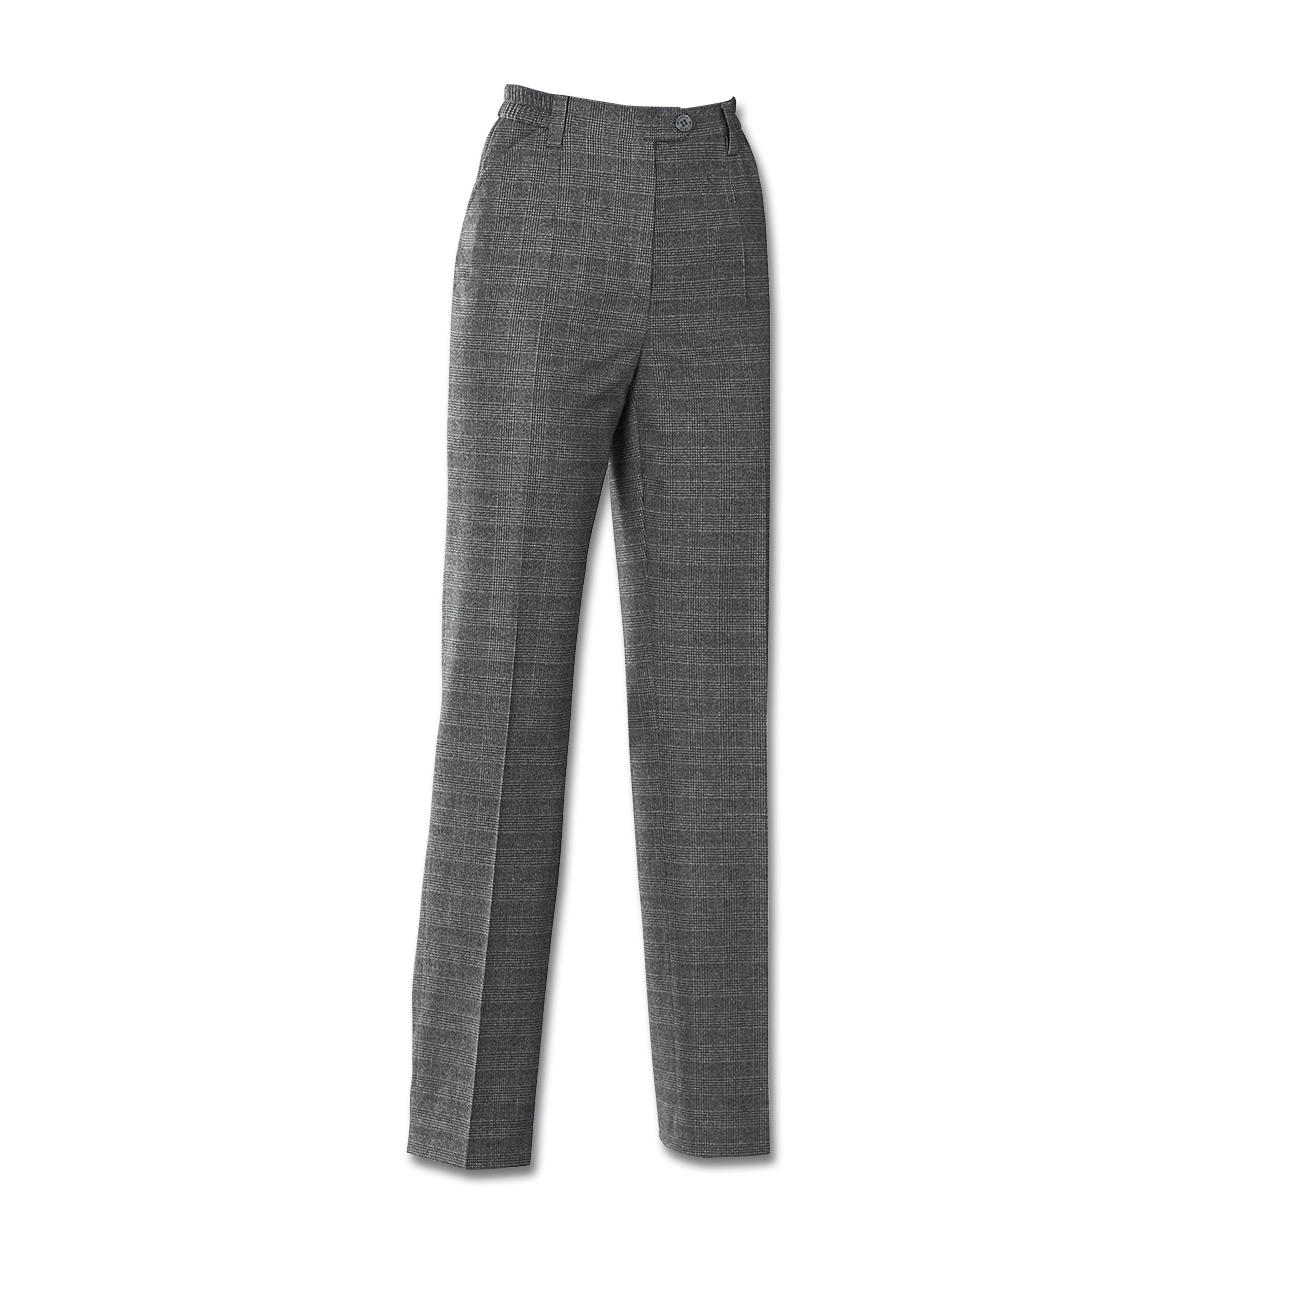 machine washable trousers